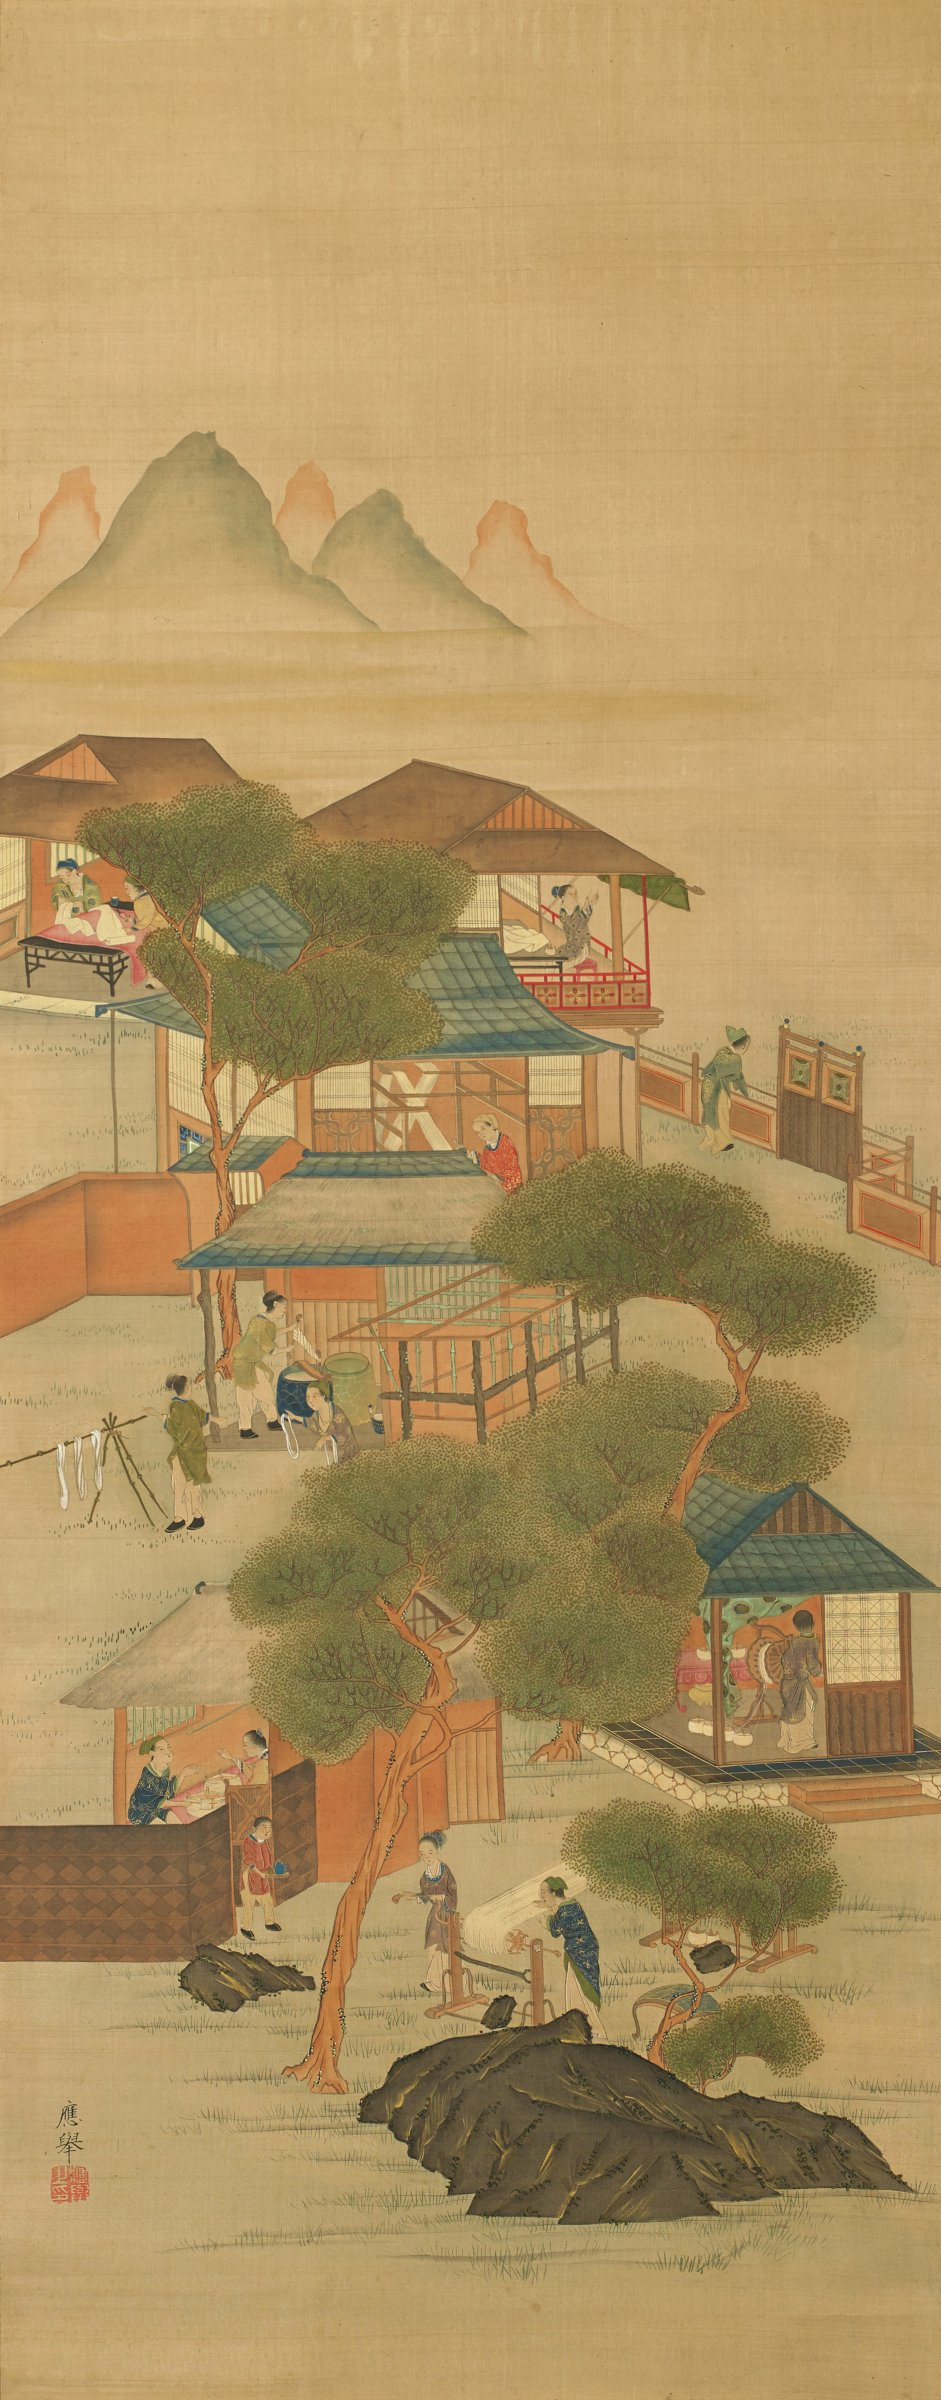 Nestled into mountains by the water are a complex of buildings devoted to silk production. Spinning, dyeing and reeling the silk is portrayed inside and outside the buildings.